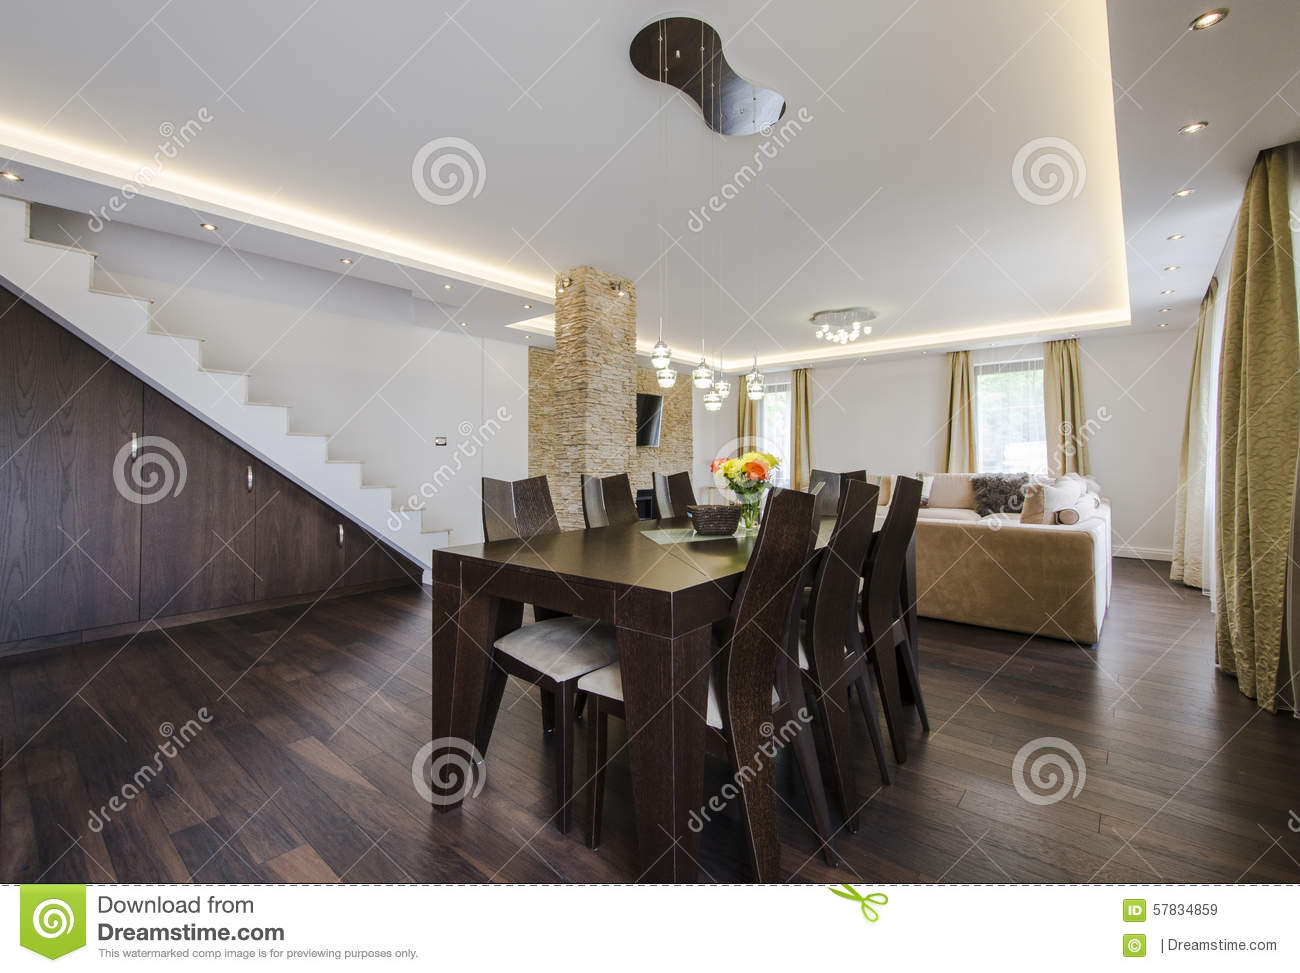 Modern home living room area stock image cartoondealer - Cocinas comedor modernas ...